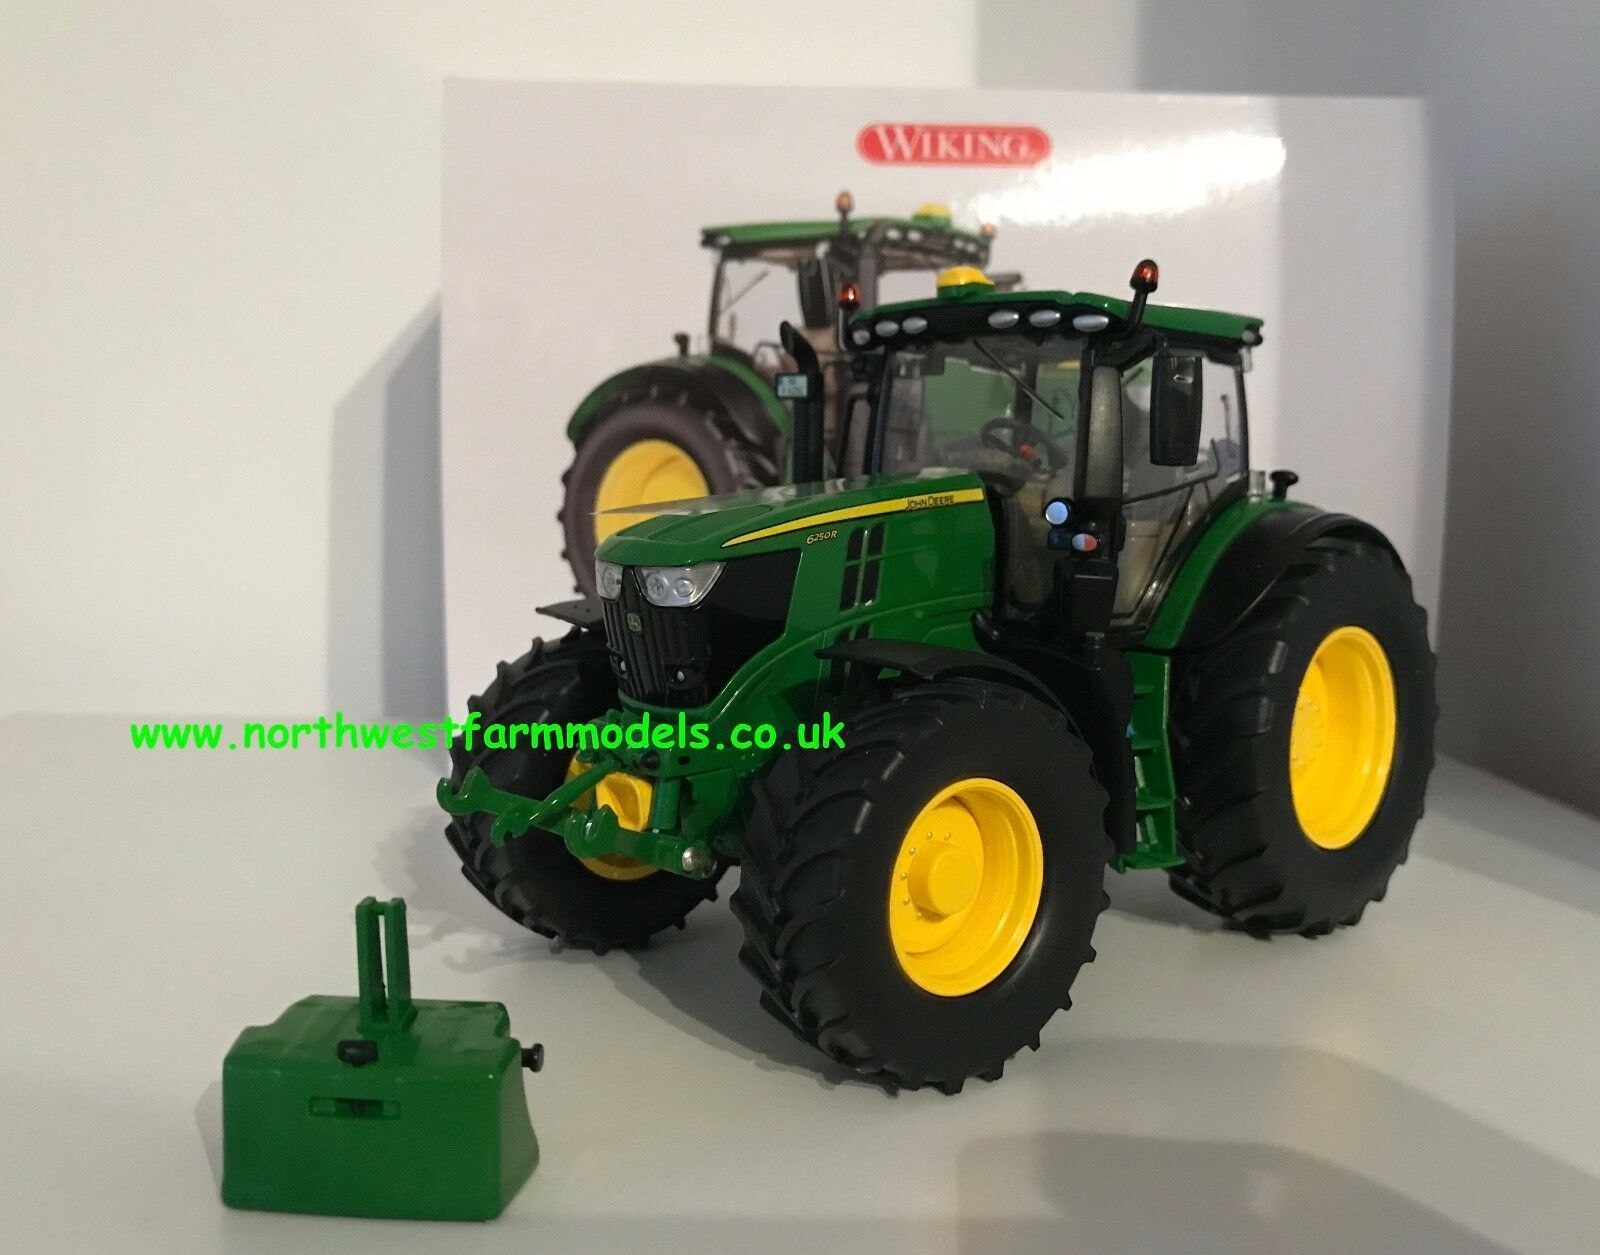 WIKING 1 32 SCALE JOHN DEERE 6250R MODEL TRACTOR WITH WEIGHT (MIB)